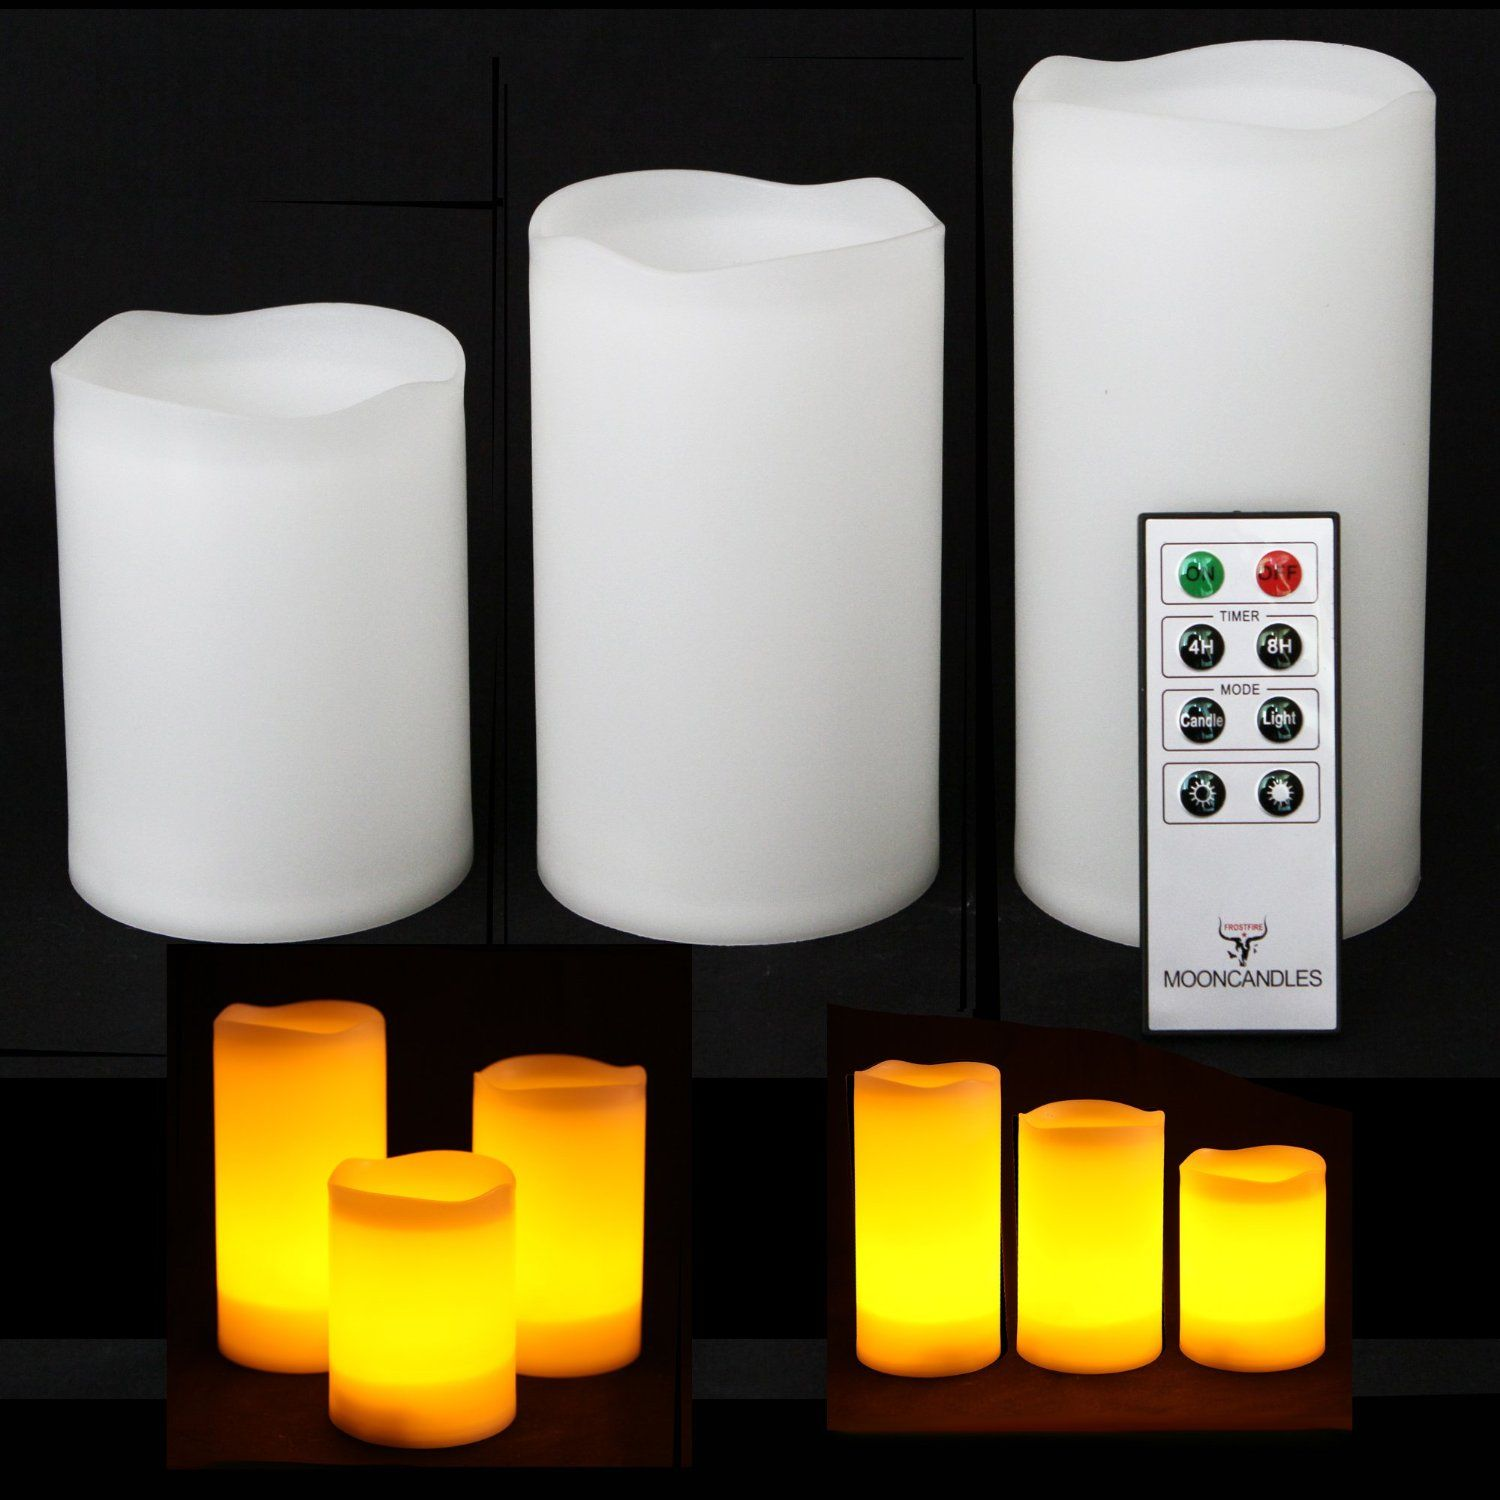 Remote Control For Outdoor Lights Three 4 5 and 6 weatherproof resin remote control color lights workwithnaturefo